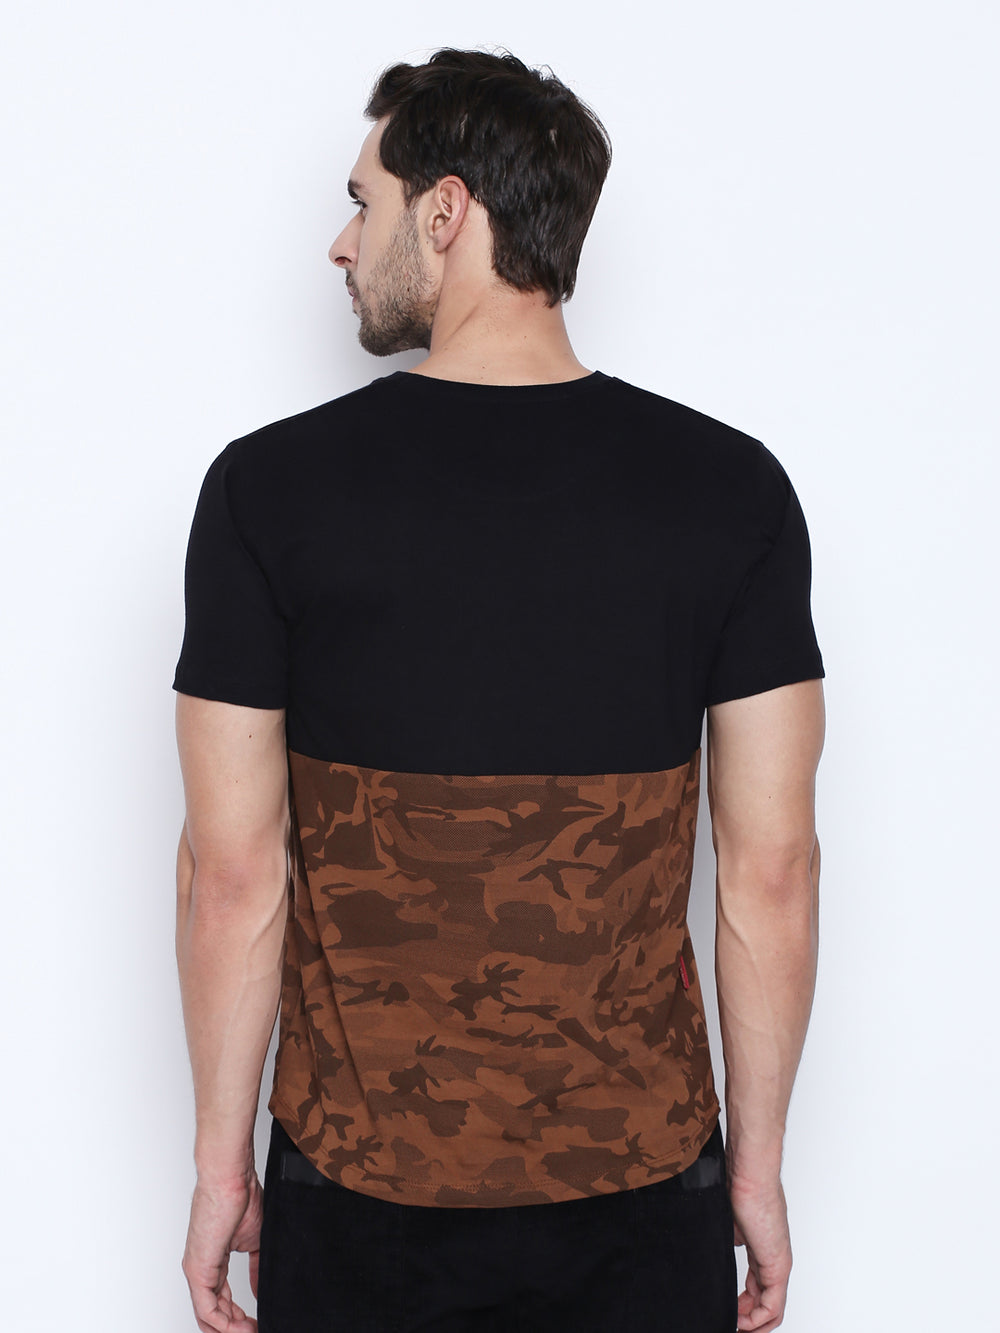 Black N Brown Camouflage Patterned Cotton T-Shirt